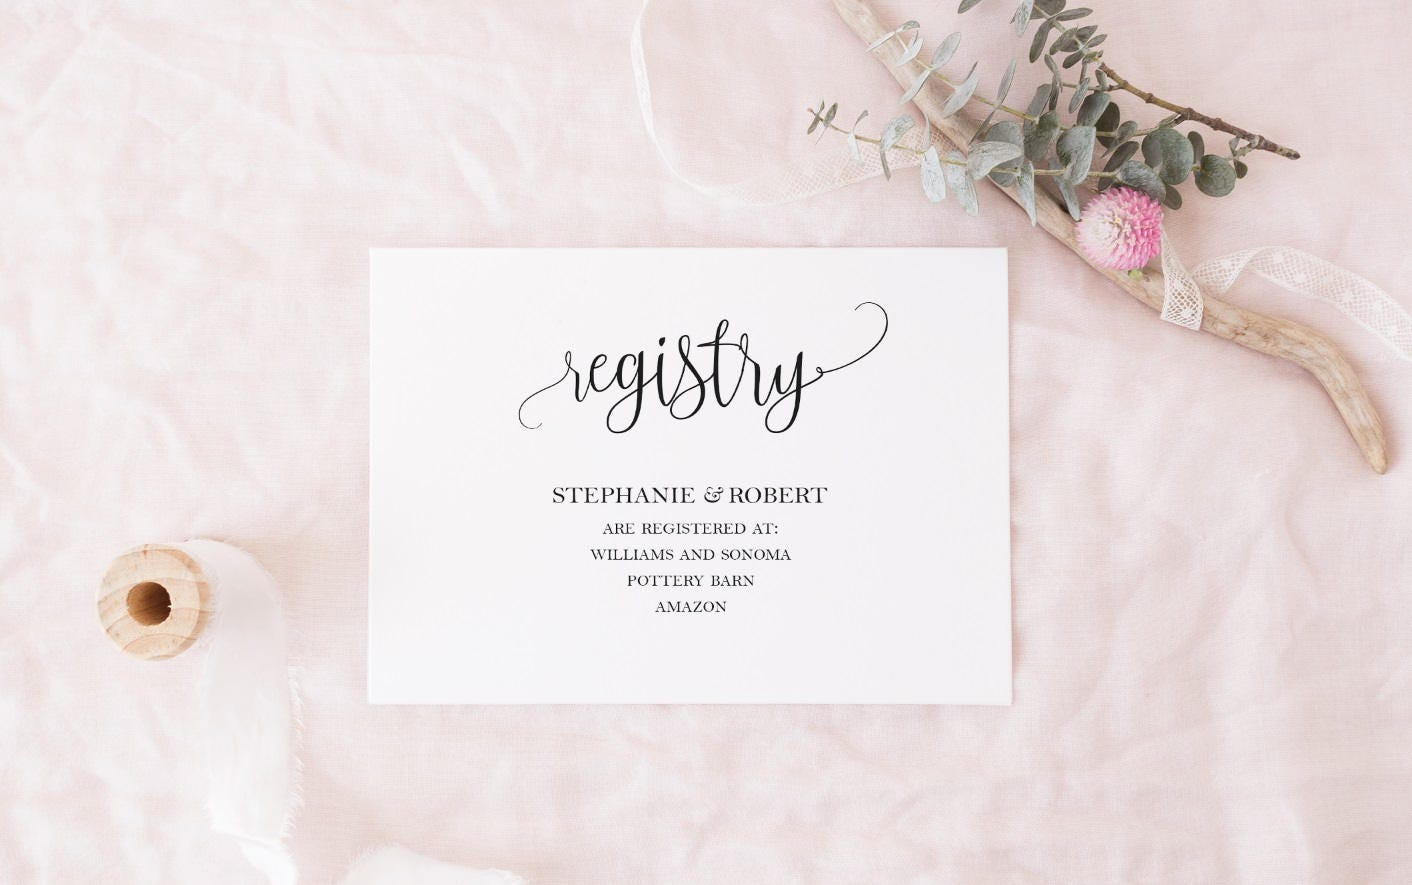 Wedding Registry Card Examples: Black And White Registry Cards Template DIY Gift Registry Card